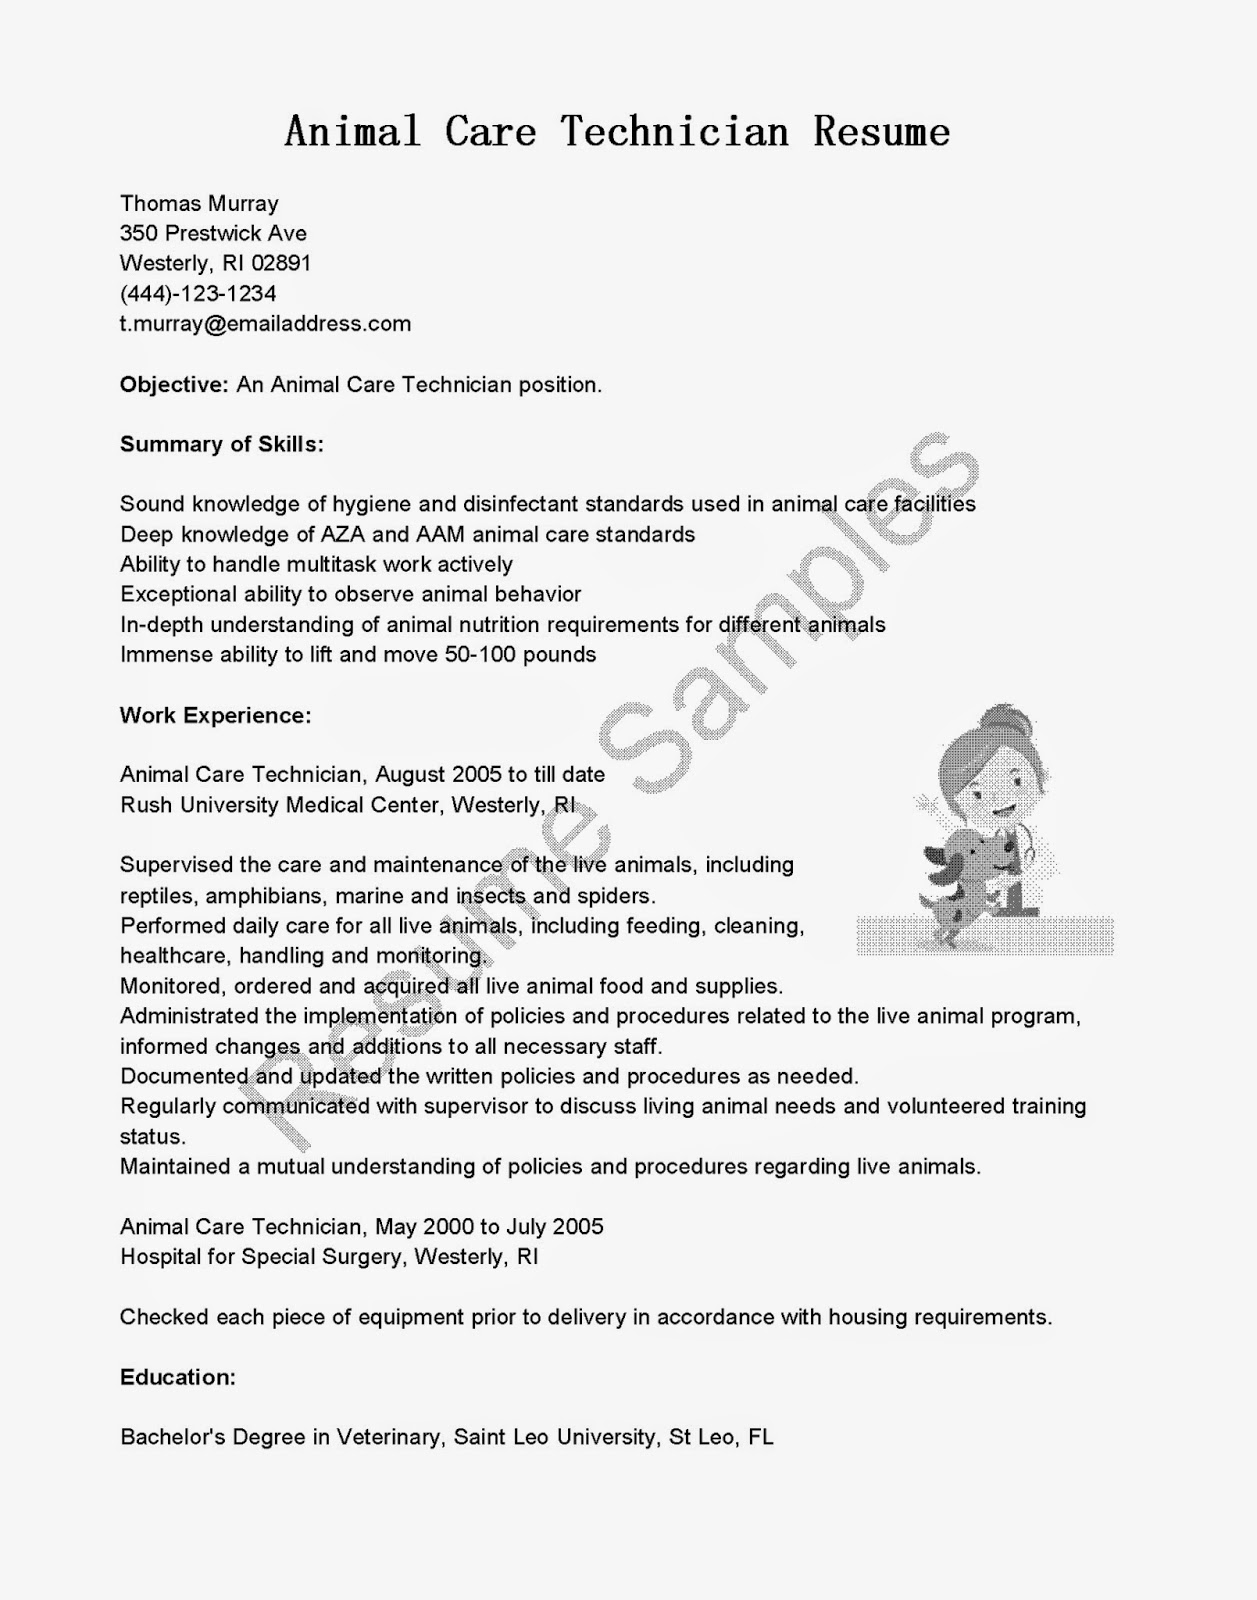 Technical Resume Objective Examples Plagiarism Free Papers From 10 Per Page Experienced Writers Are